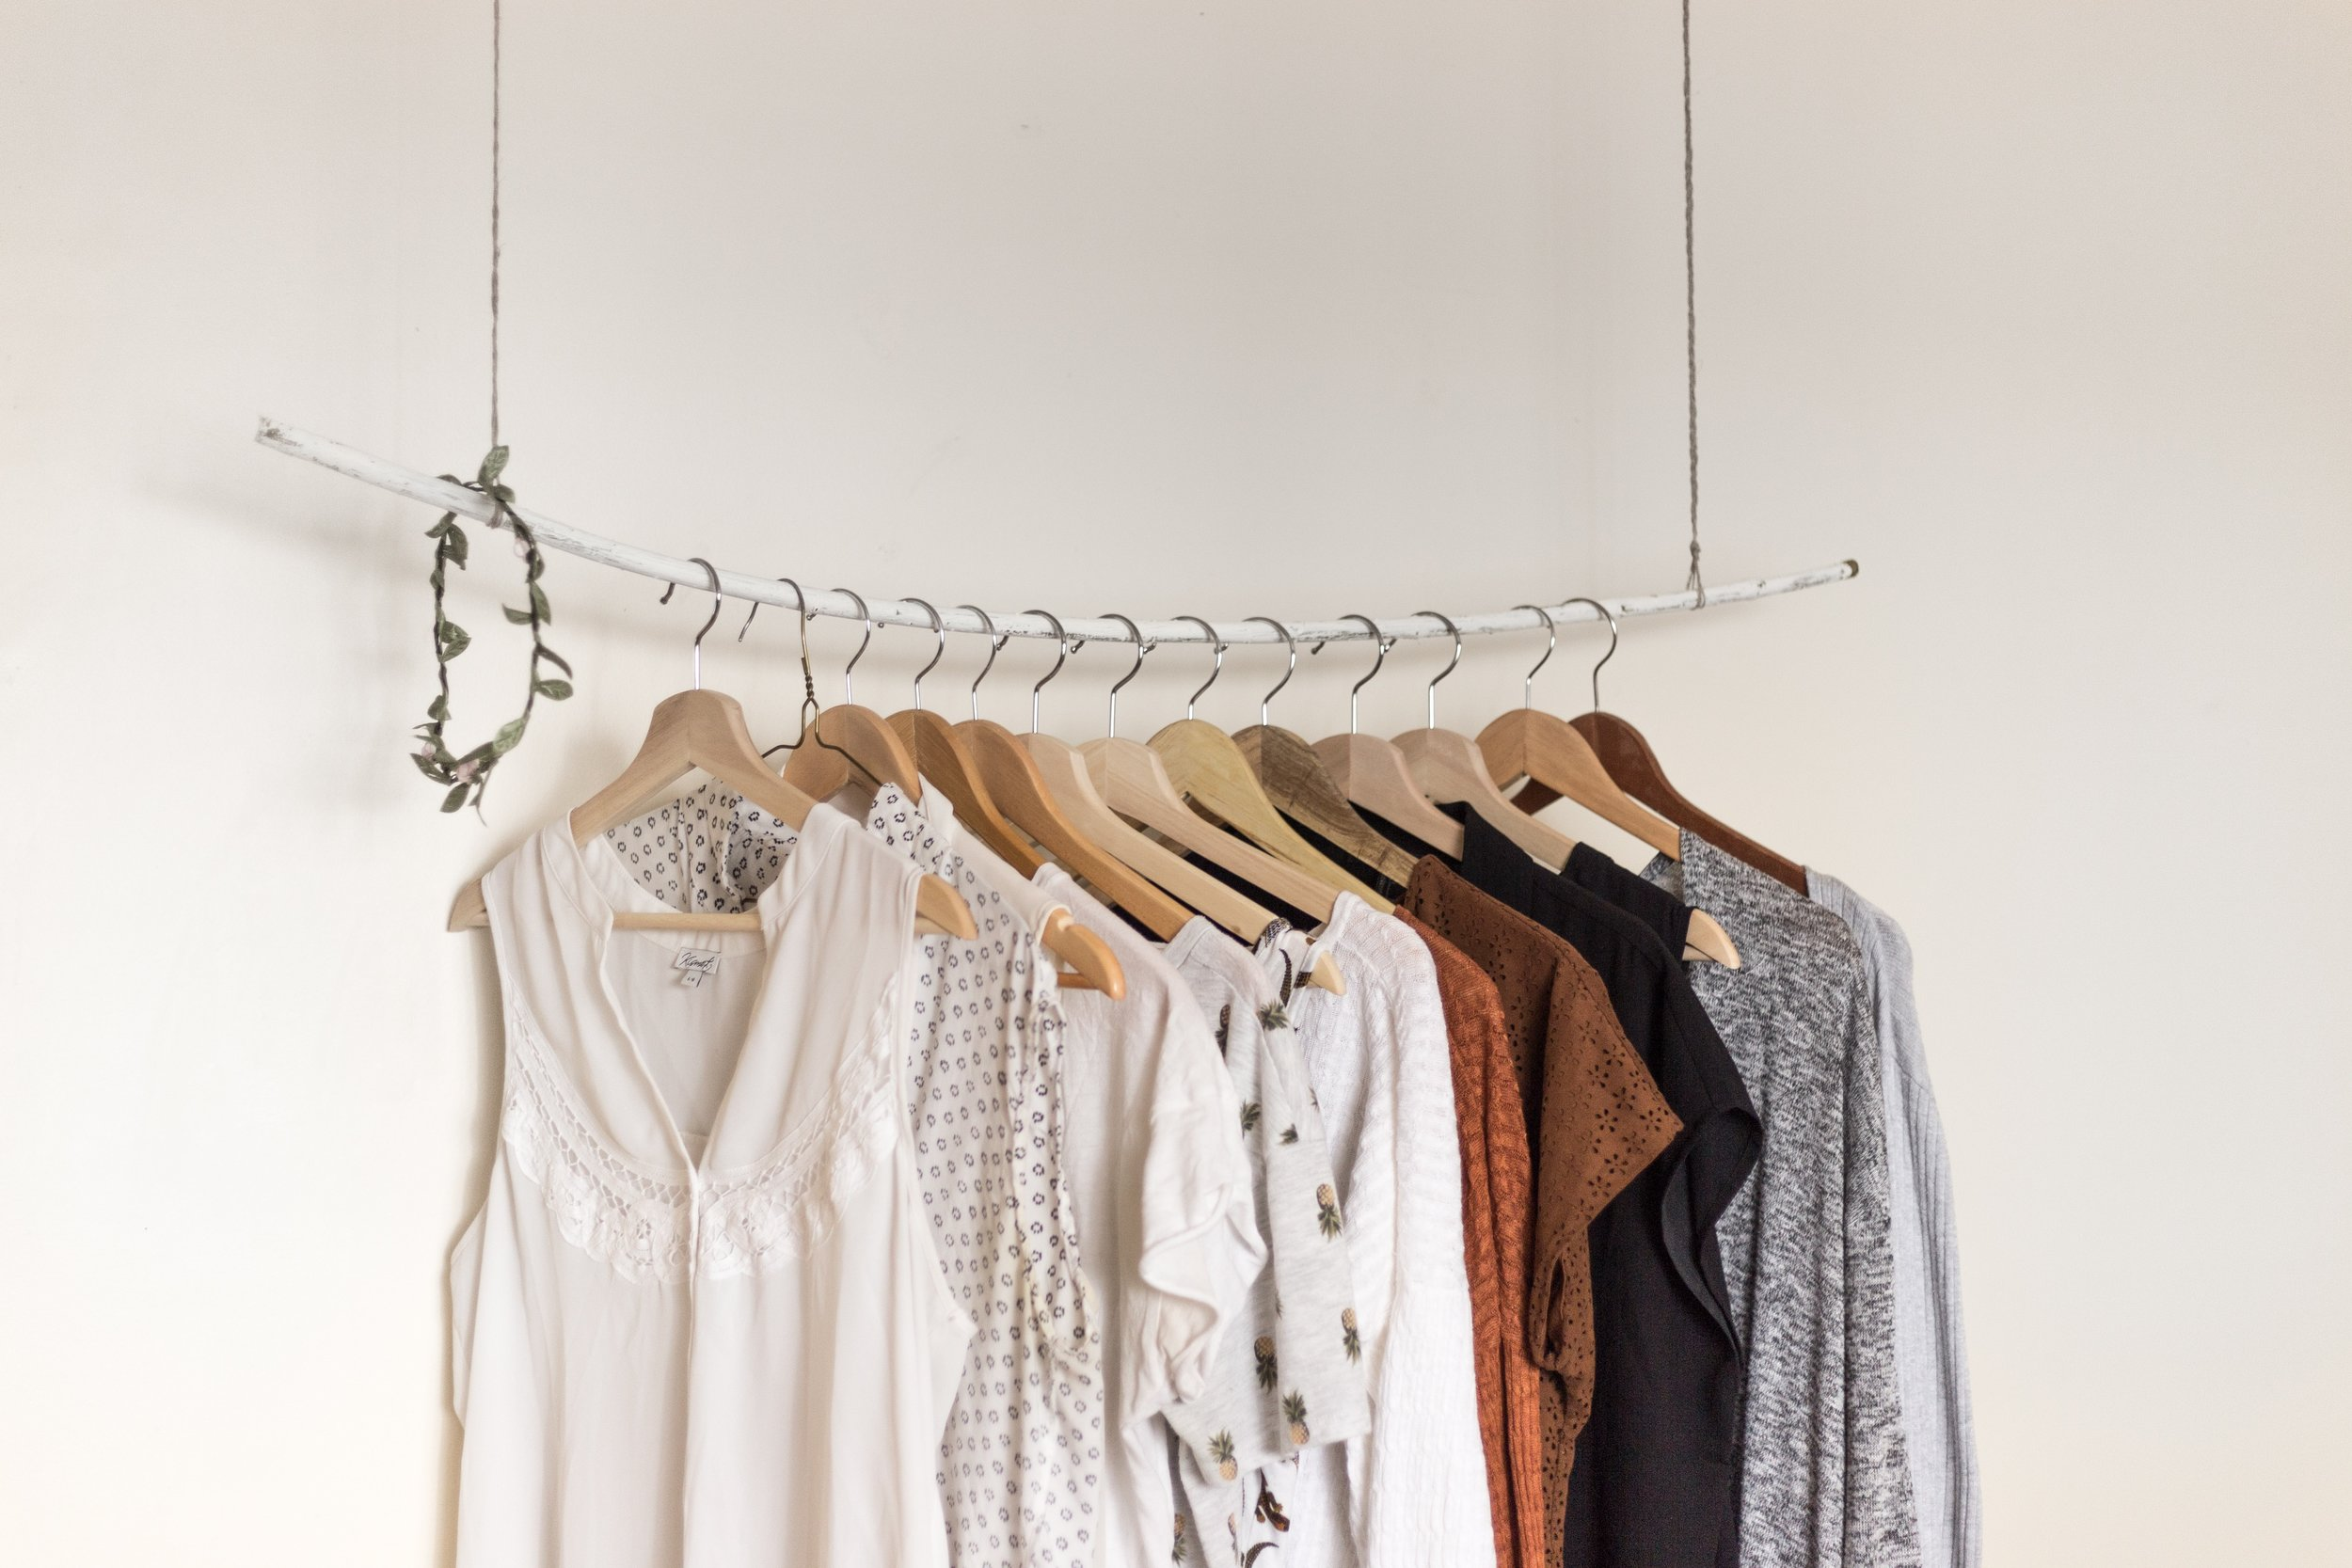 Selling clothes online will help you save for that dream vacation much quicker.